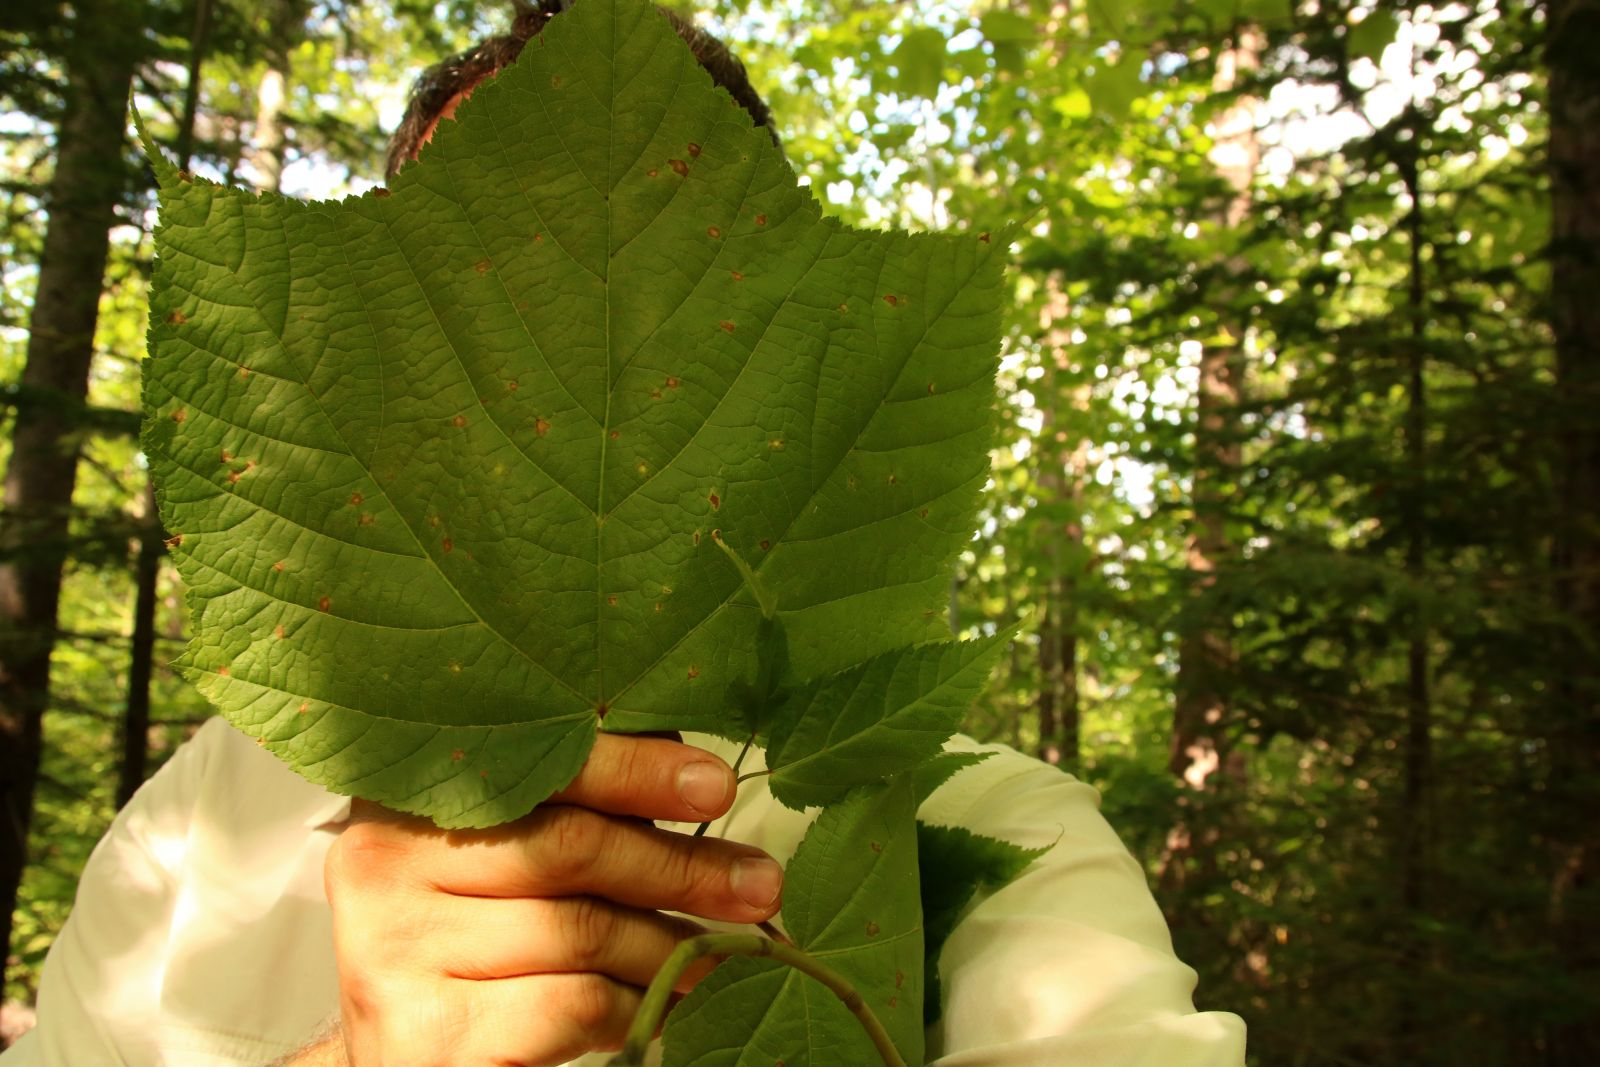 Be on the lookout for striped maple leaves, which can grow to enormous proportions.